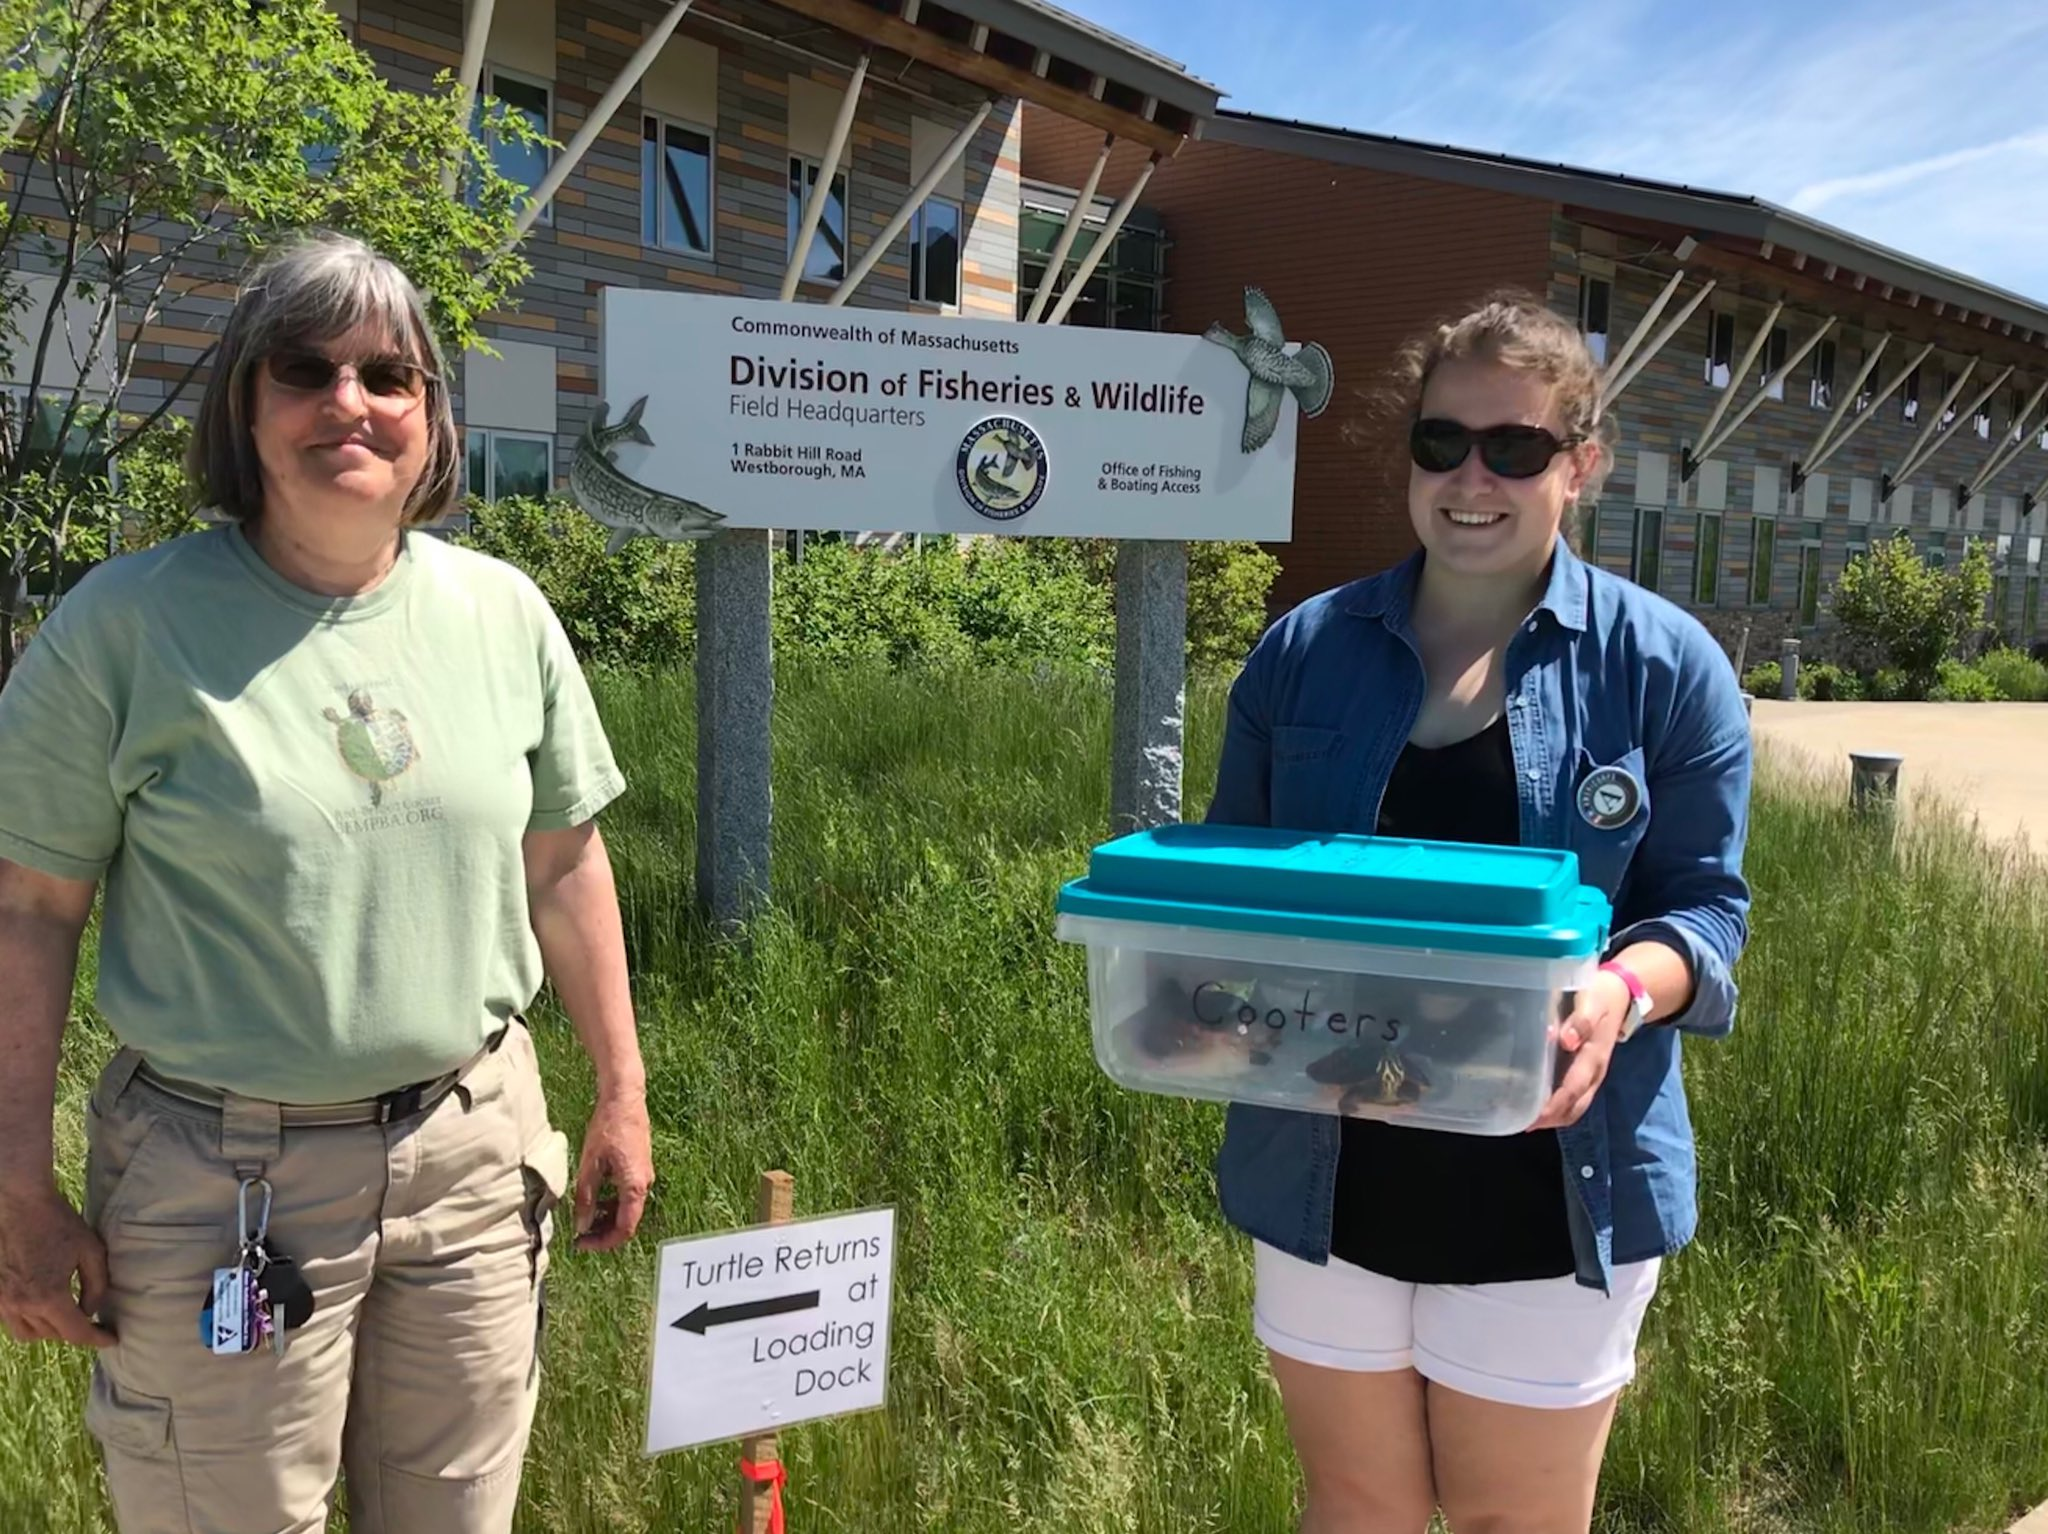 Lisa and Molly turning in the 2018 turtles at MassWildlife headquarters.